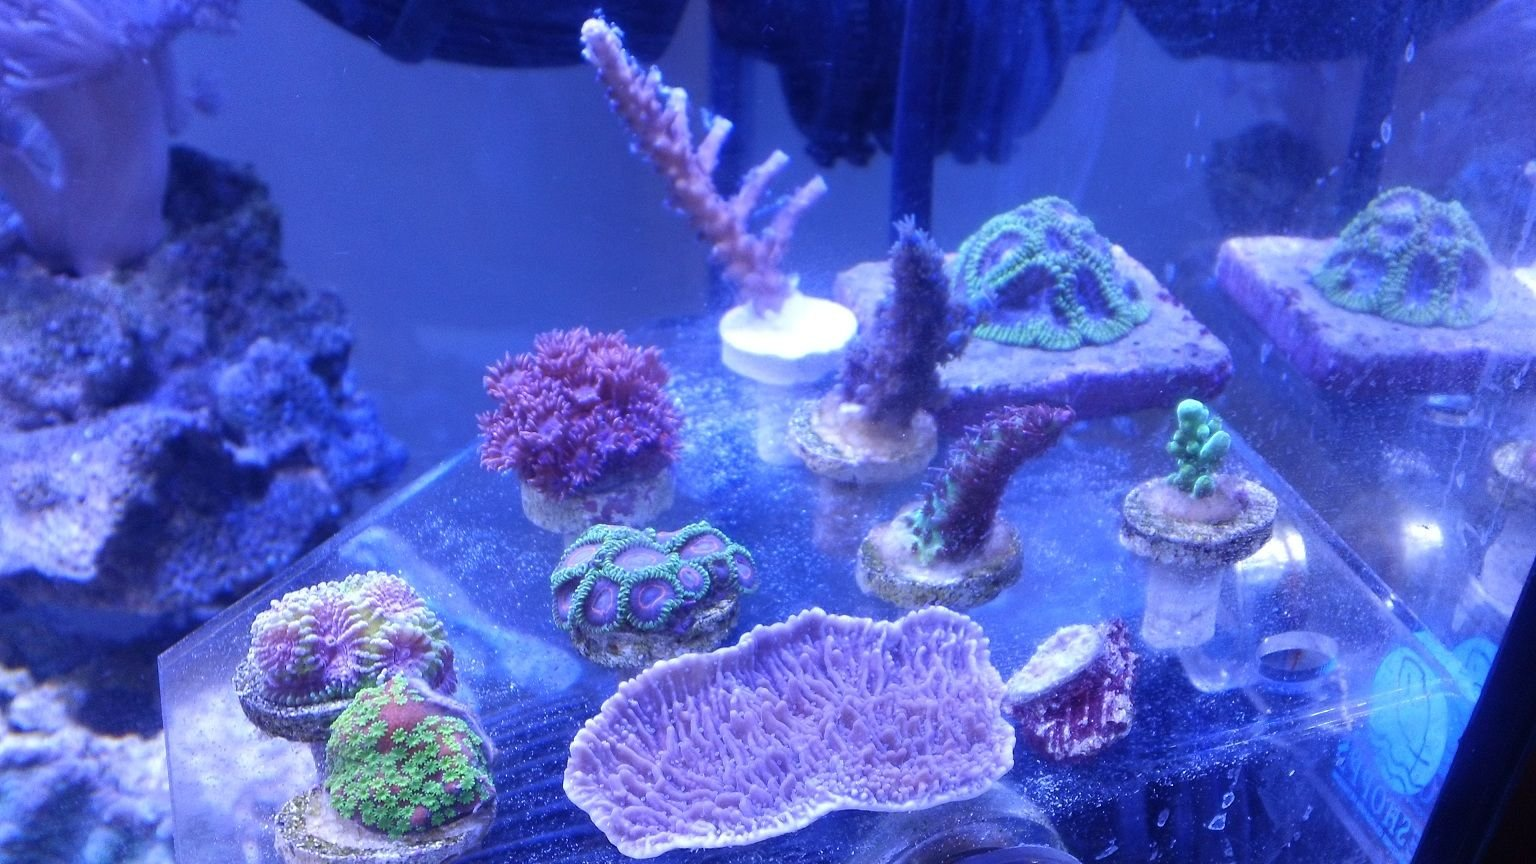 corals inverts - rhodactis indosinensis - hairy mushroom stocking in 75 gallons tank - idaho grape monti cap sunset montie lil princess favia red planet acro unknown blue acro tiny natalies southern star 1st audition chalice red gonipora blue mouths spell binder favia green tort blue bottle brush pink palys green skirt